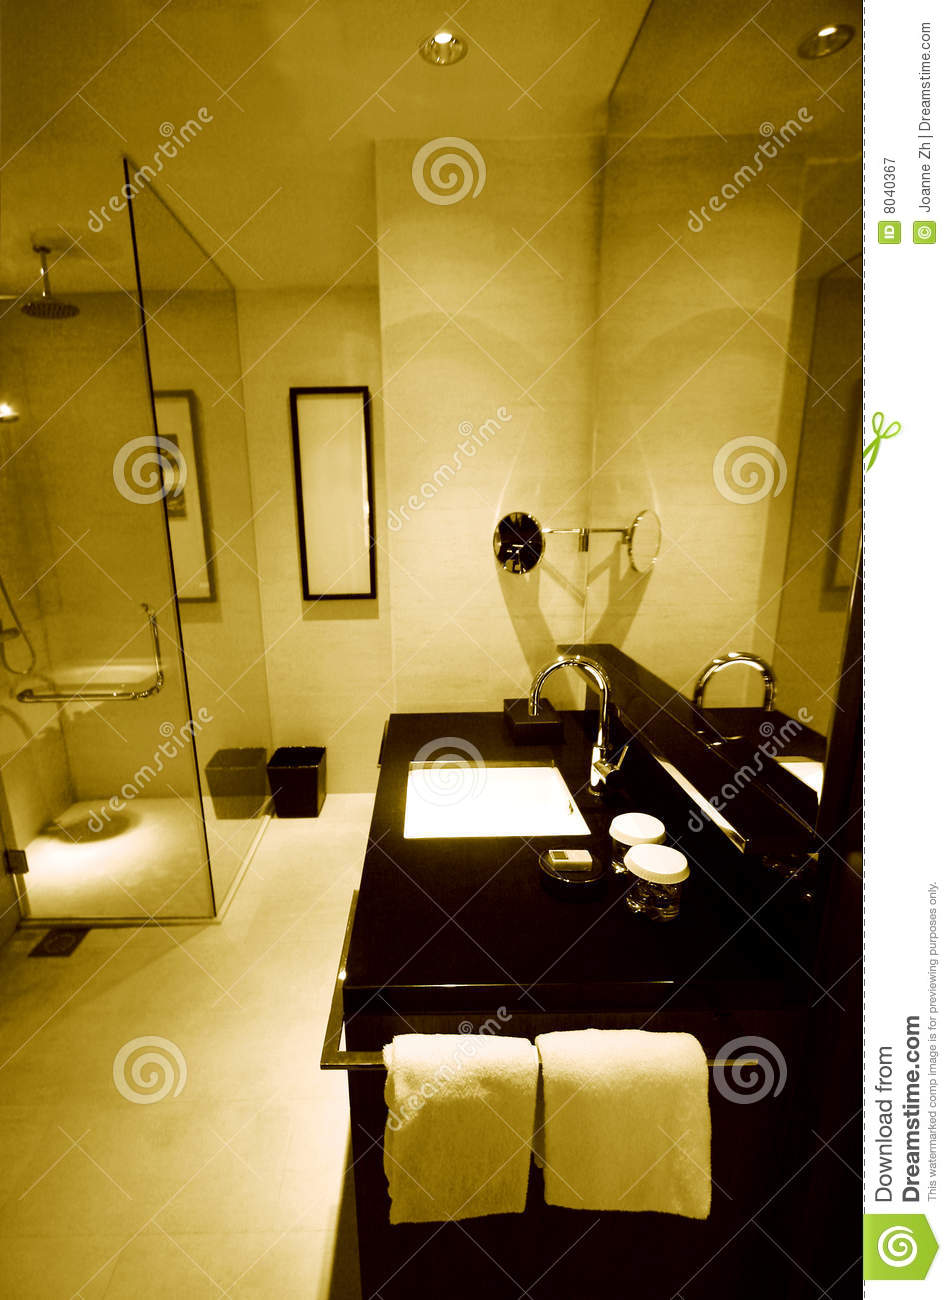 pictures of modern white living rooms ikea room ideas new luxury resort hotel bathrooms royalty free stock ...